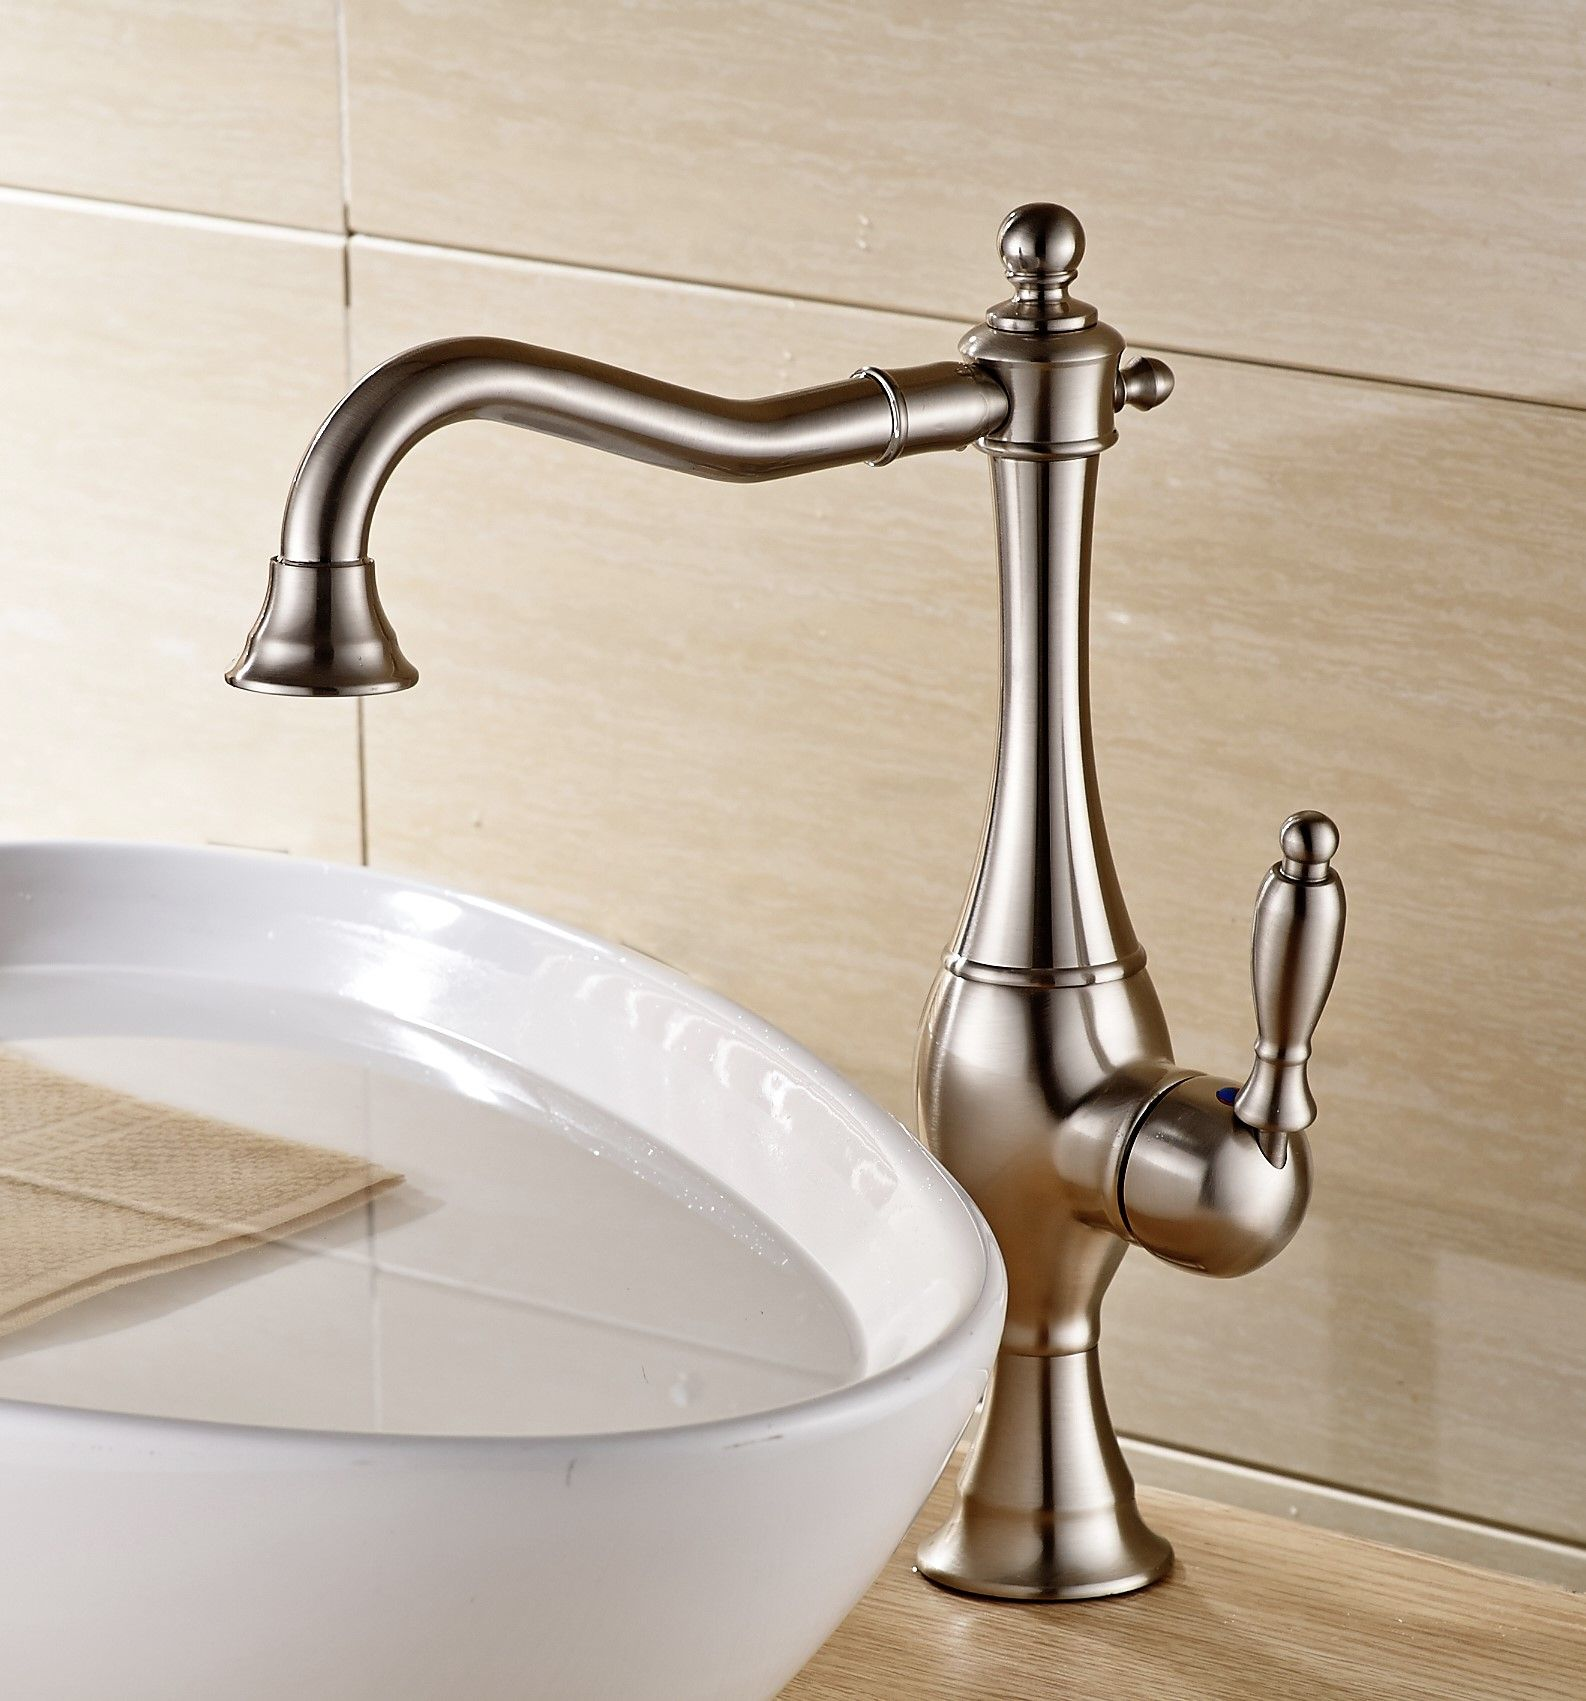 Antique Classic Nickel Brushed Single Handle Bathroom Sink - Cheap bathroom fixtures online